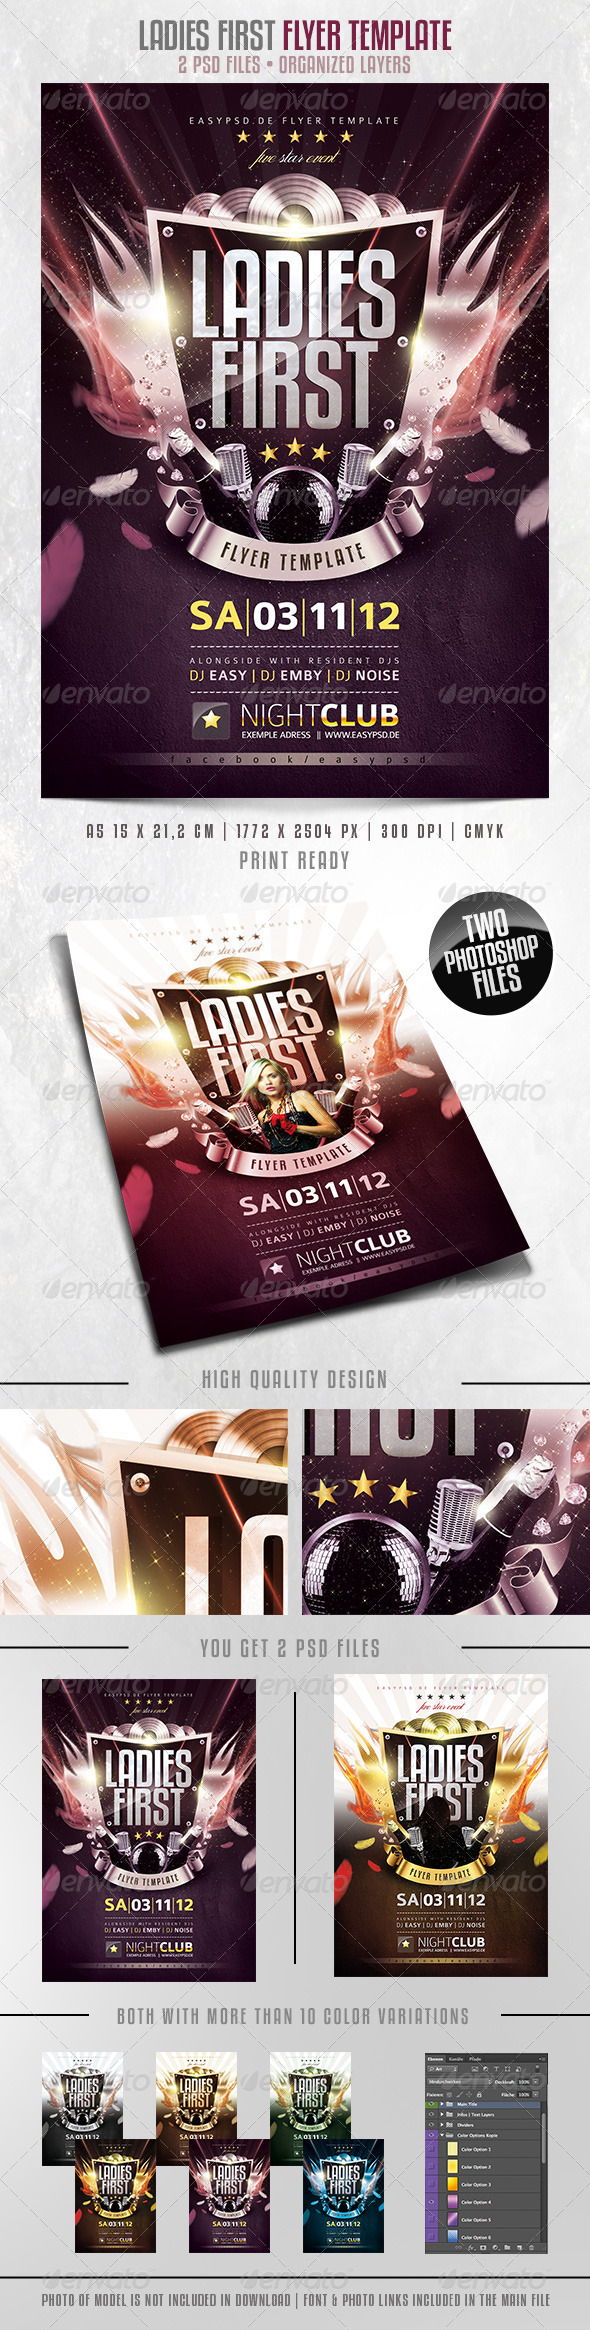 Ladies First Flyer Template  - Clubs & Parties Events